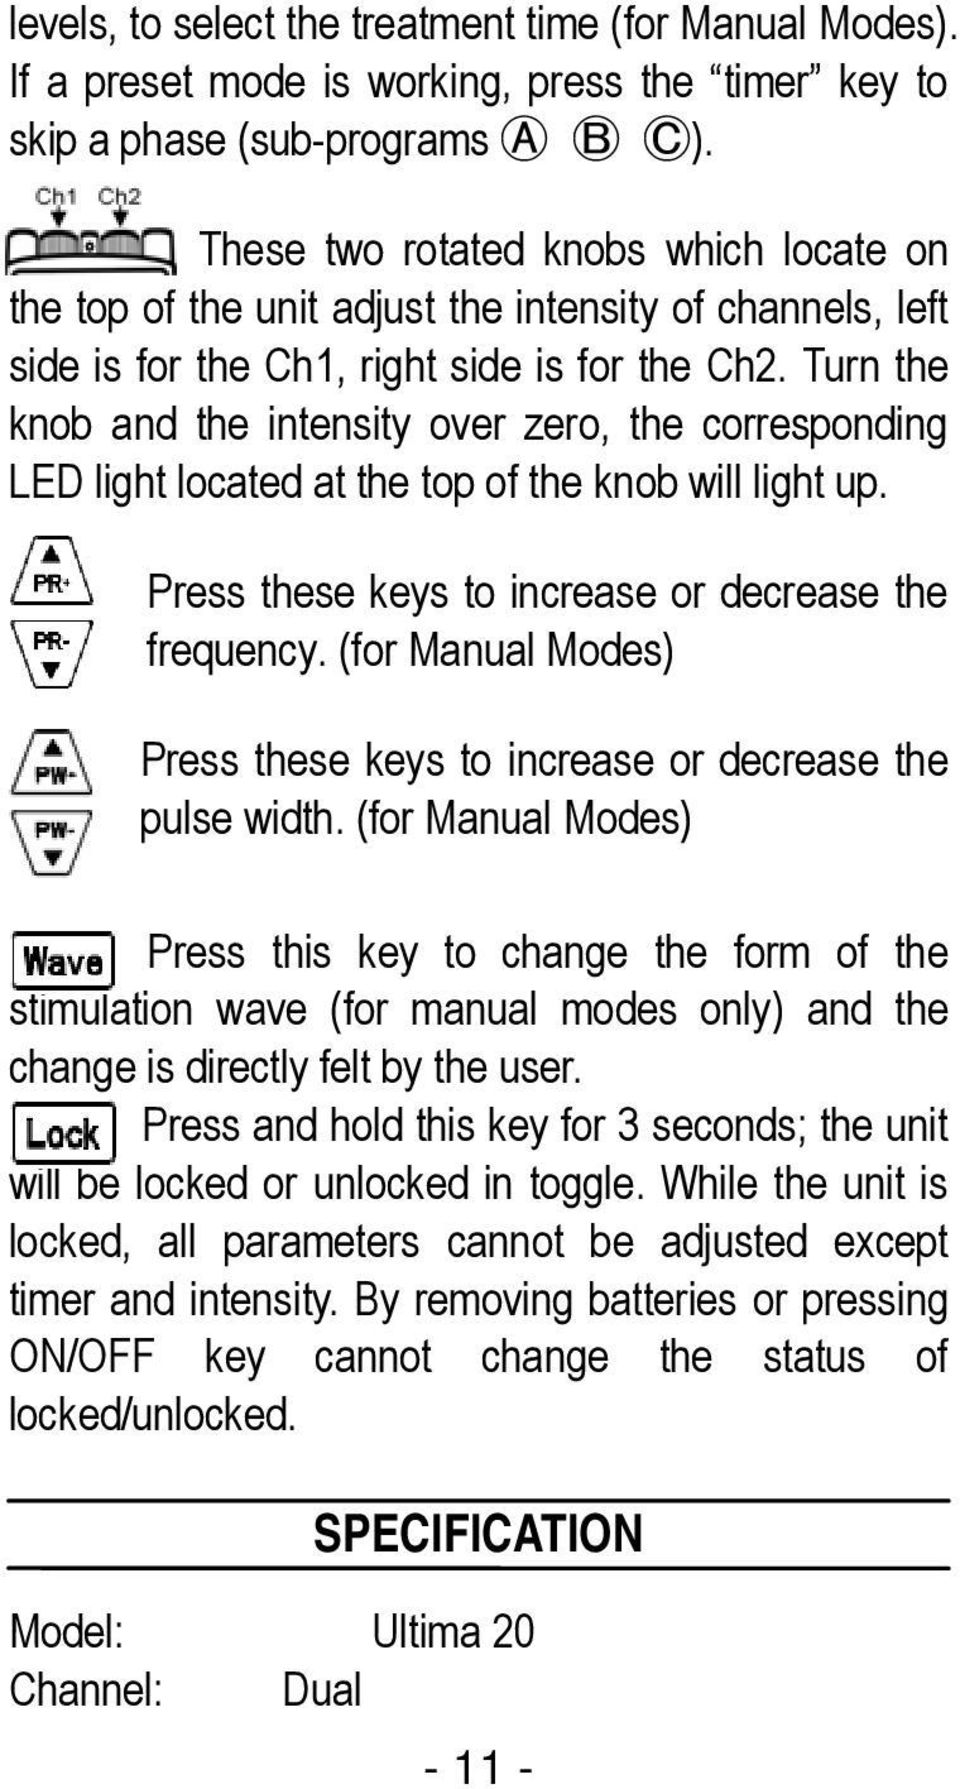 Turn the knob and the intensity over zero, the corresponding LED light located at the top of the knob will light up. Press these keys to increase or decrease the frequency.